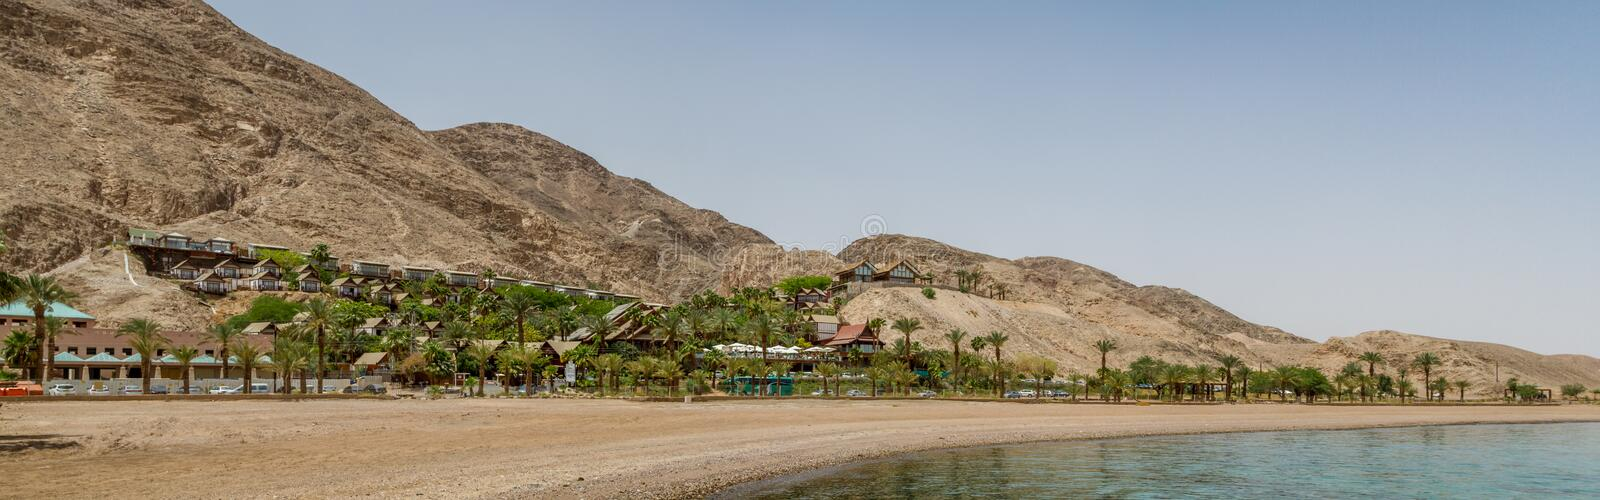 Beach of Eilat city, Red Sea, Israel royalty free stock photo